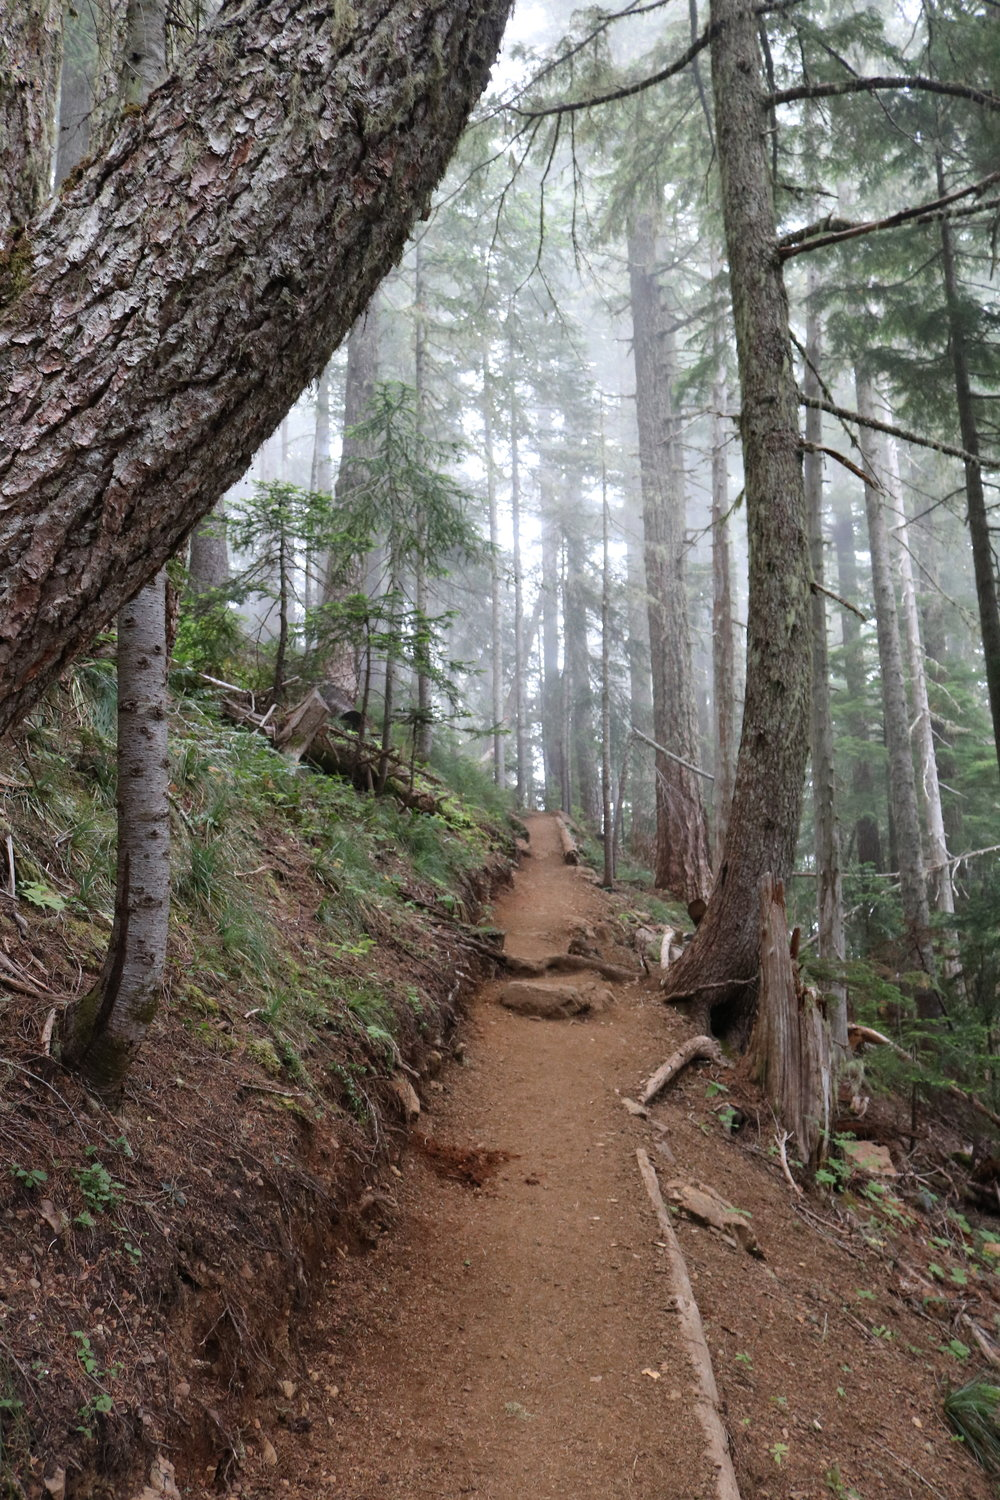 For the first third of a mile, the trail ascends through forested switchbacks.